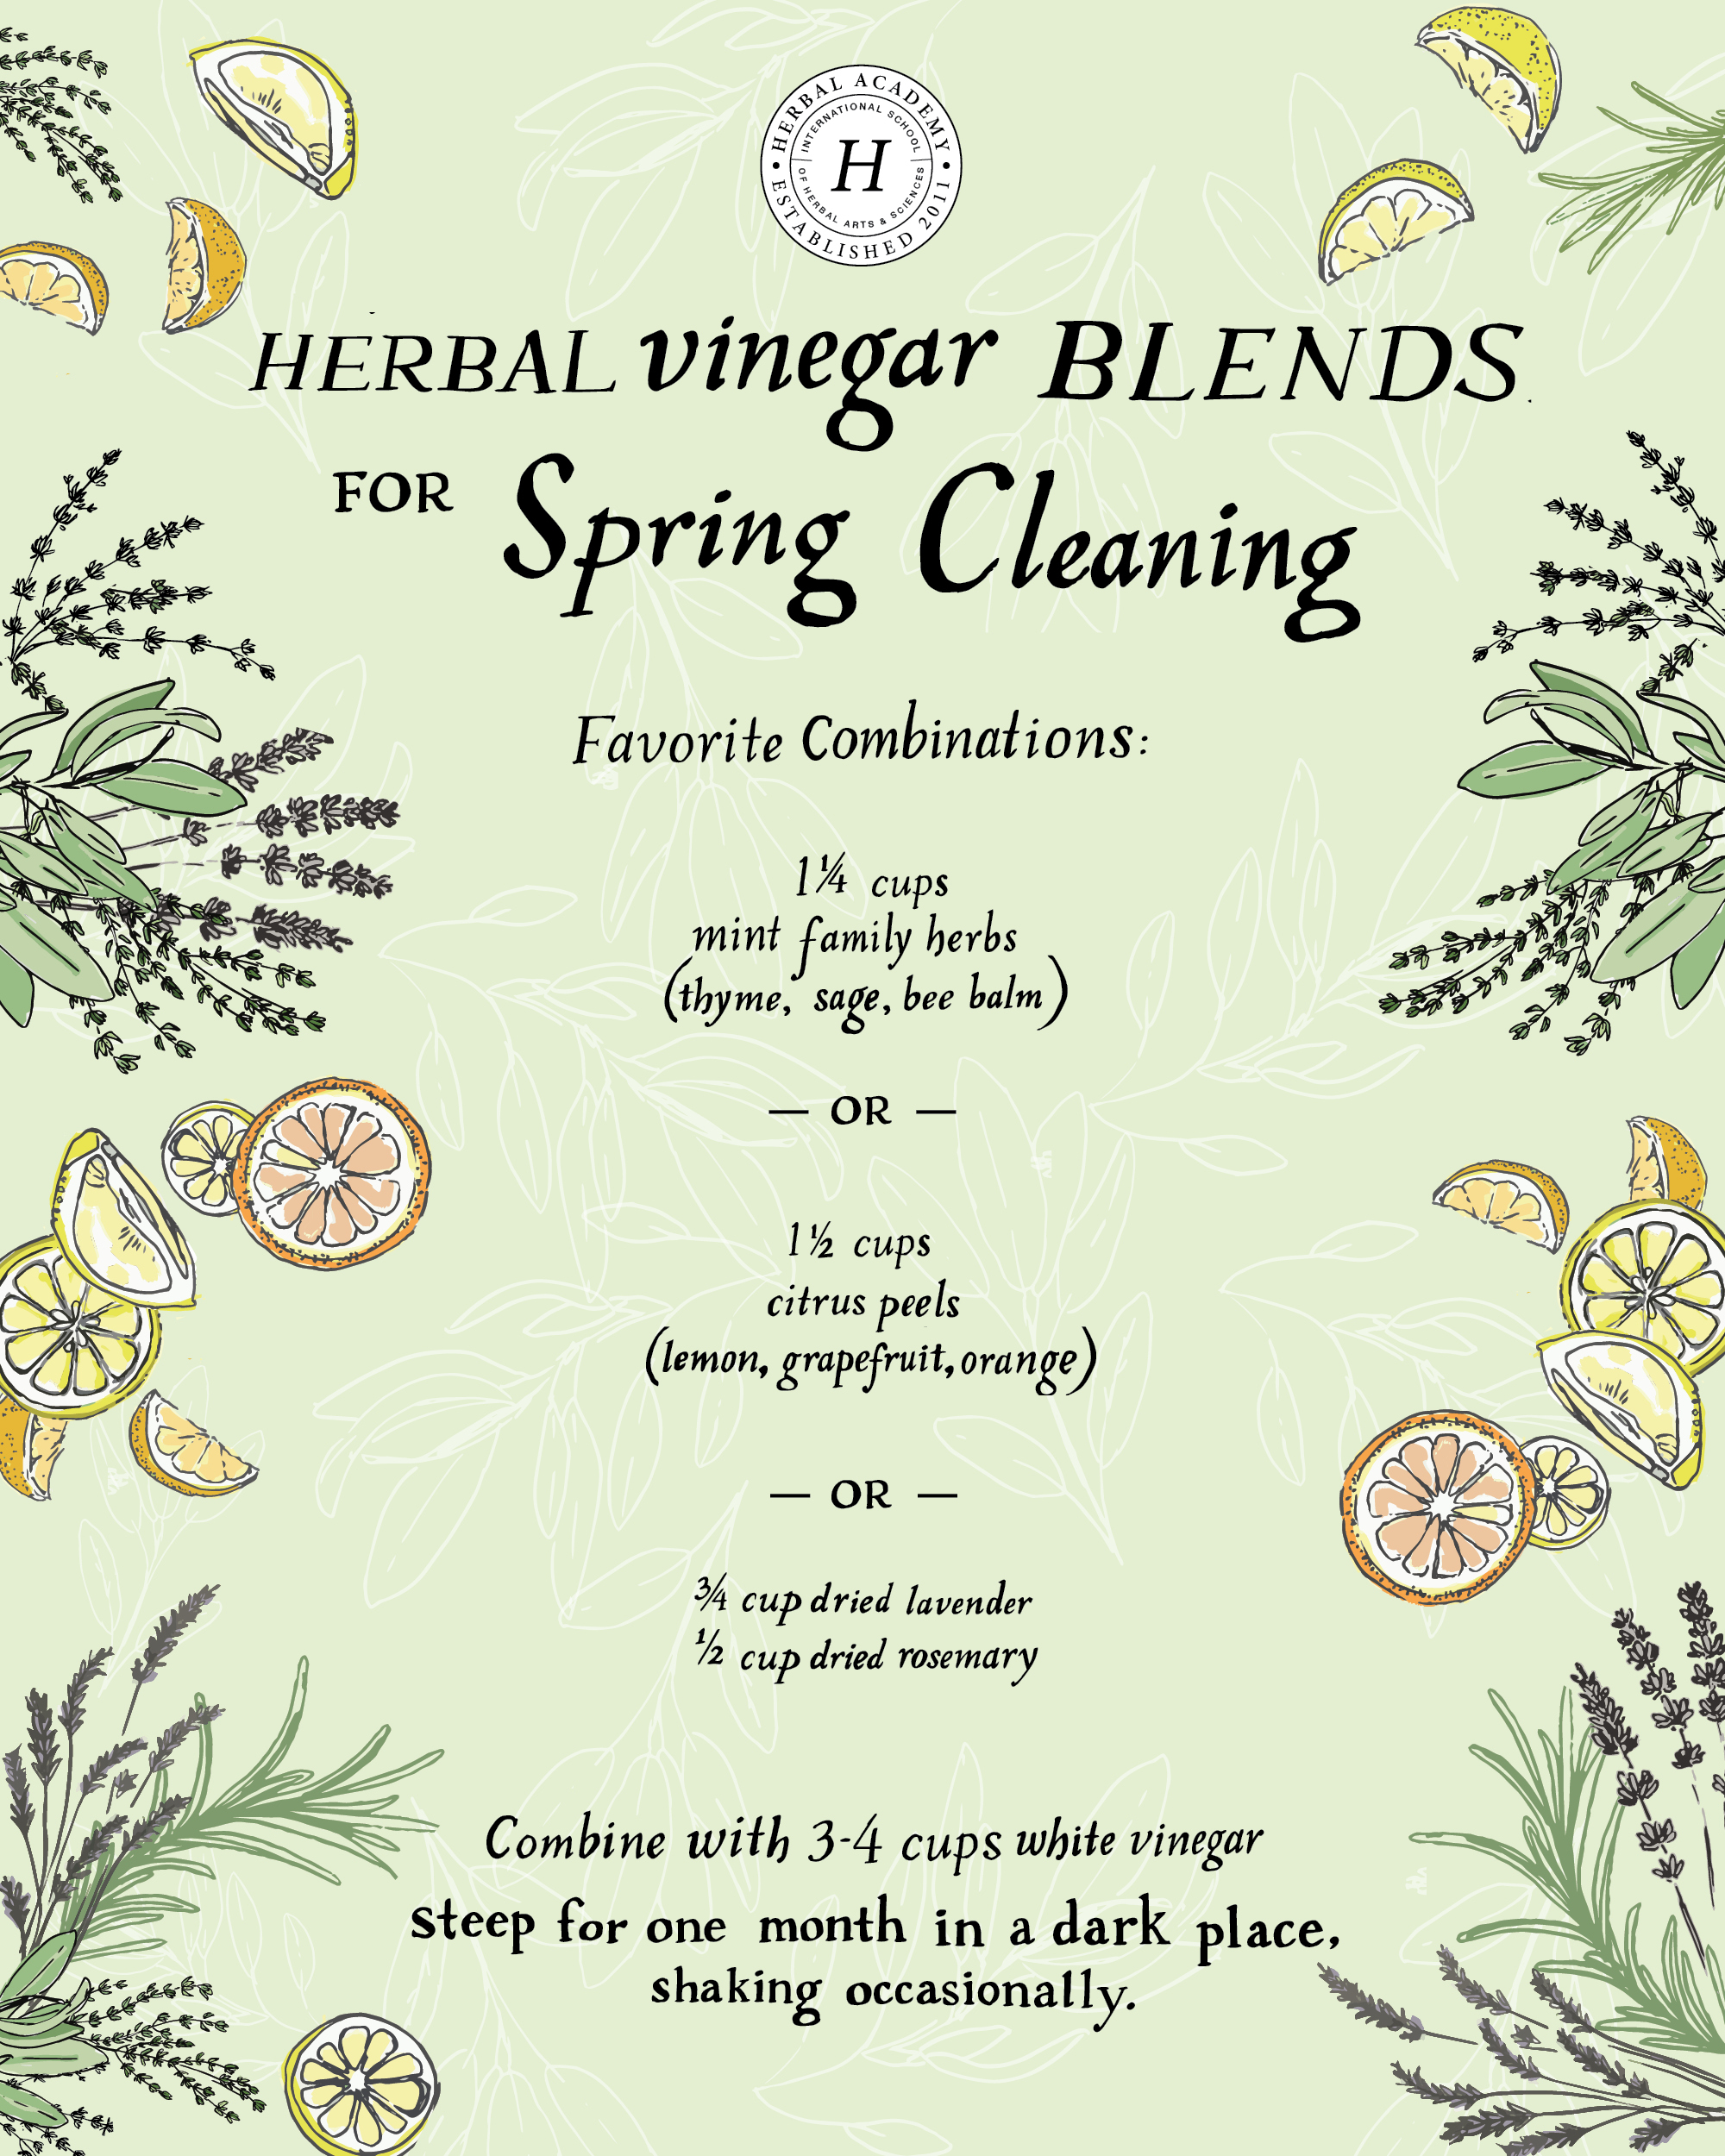 How To Make An All-Purpose Herbal Cleaning Spray For Spring Cleaning | Herbal Academy | Spring cleaning is another opportunity to integrate herbs into our lives. Here's an easy way to do it with an all-purpose herbal cleaning spray!